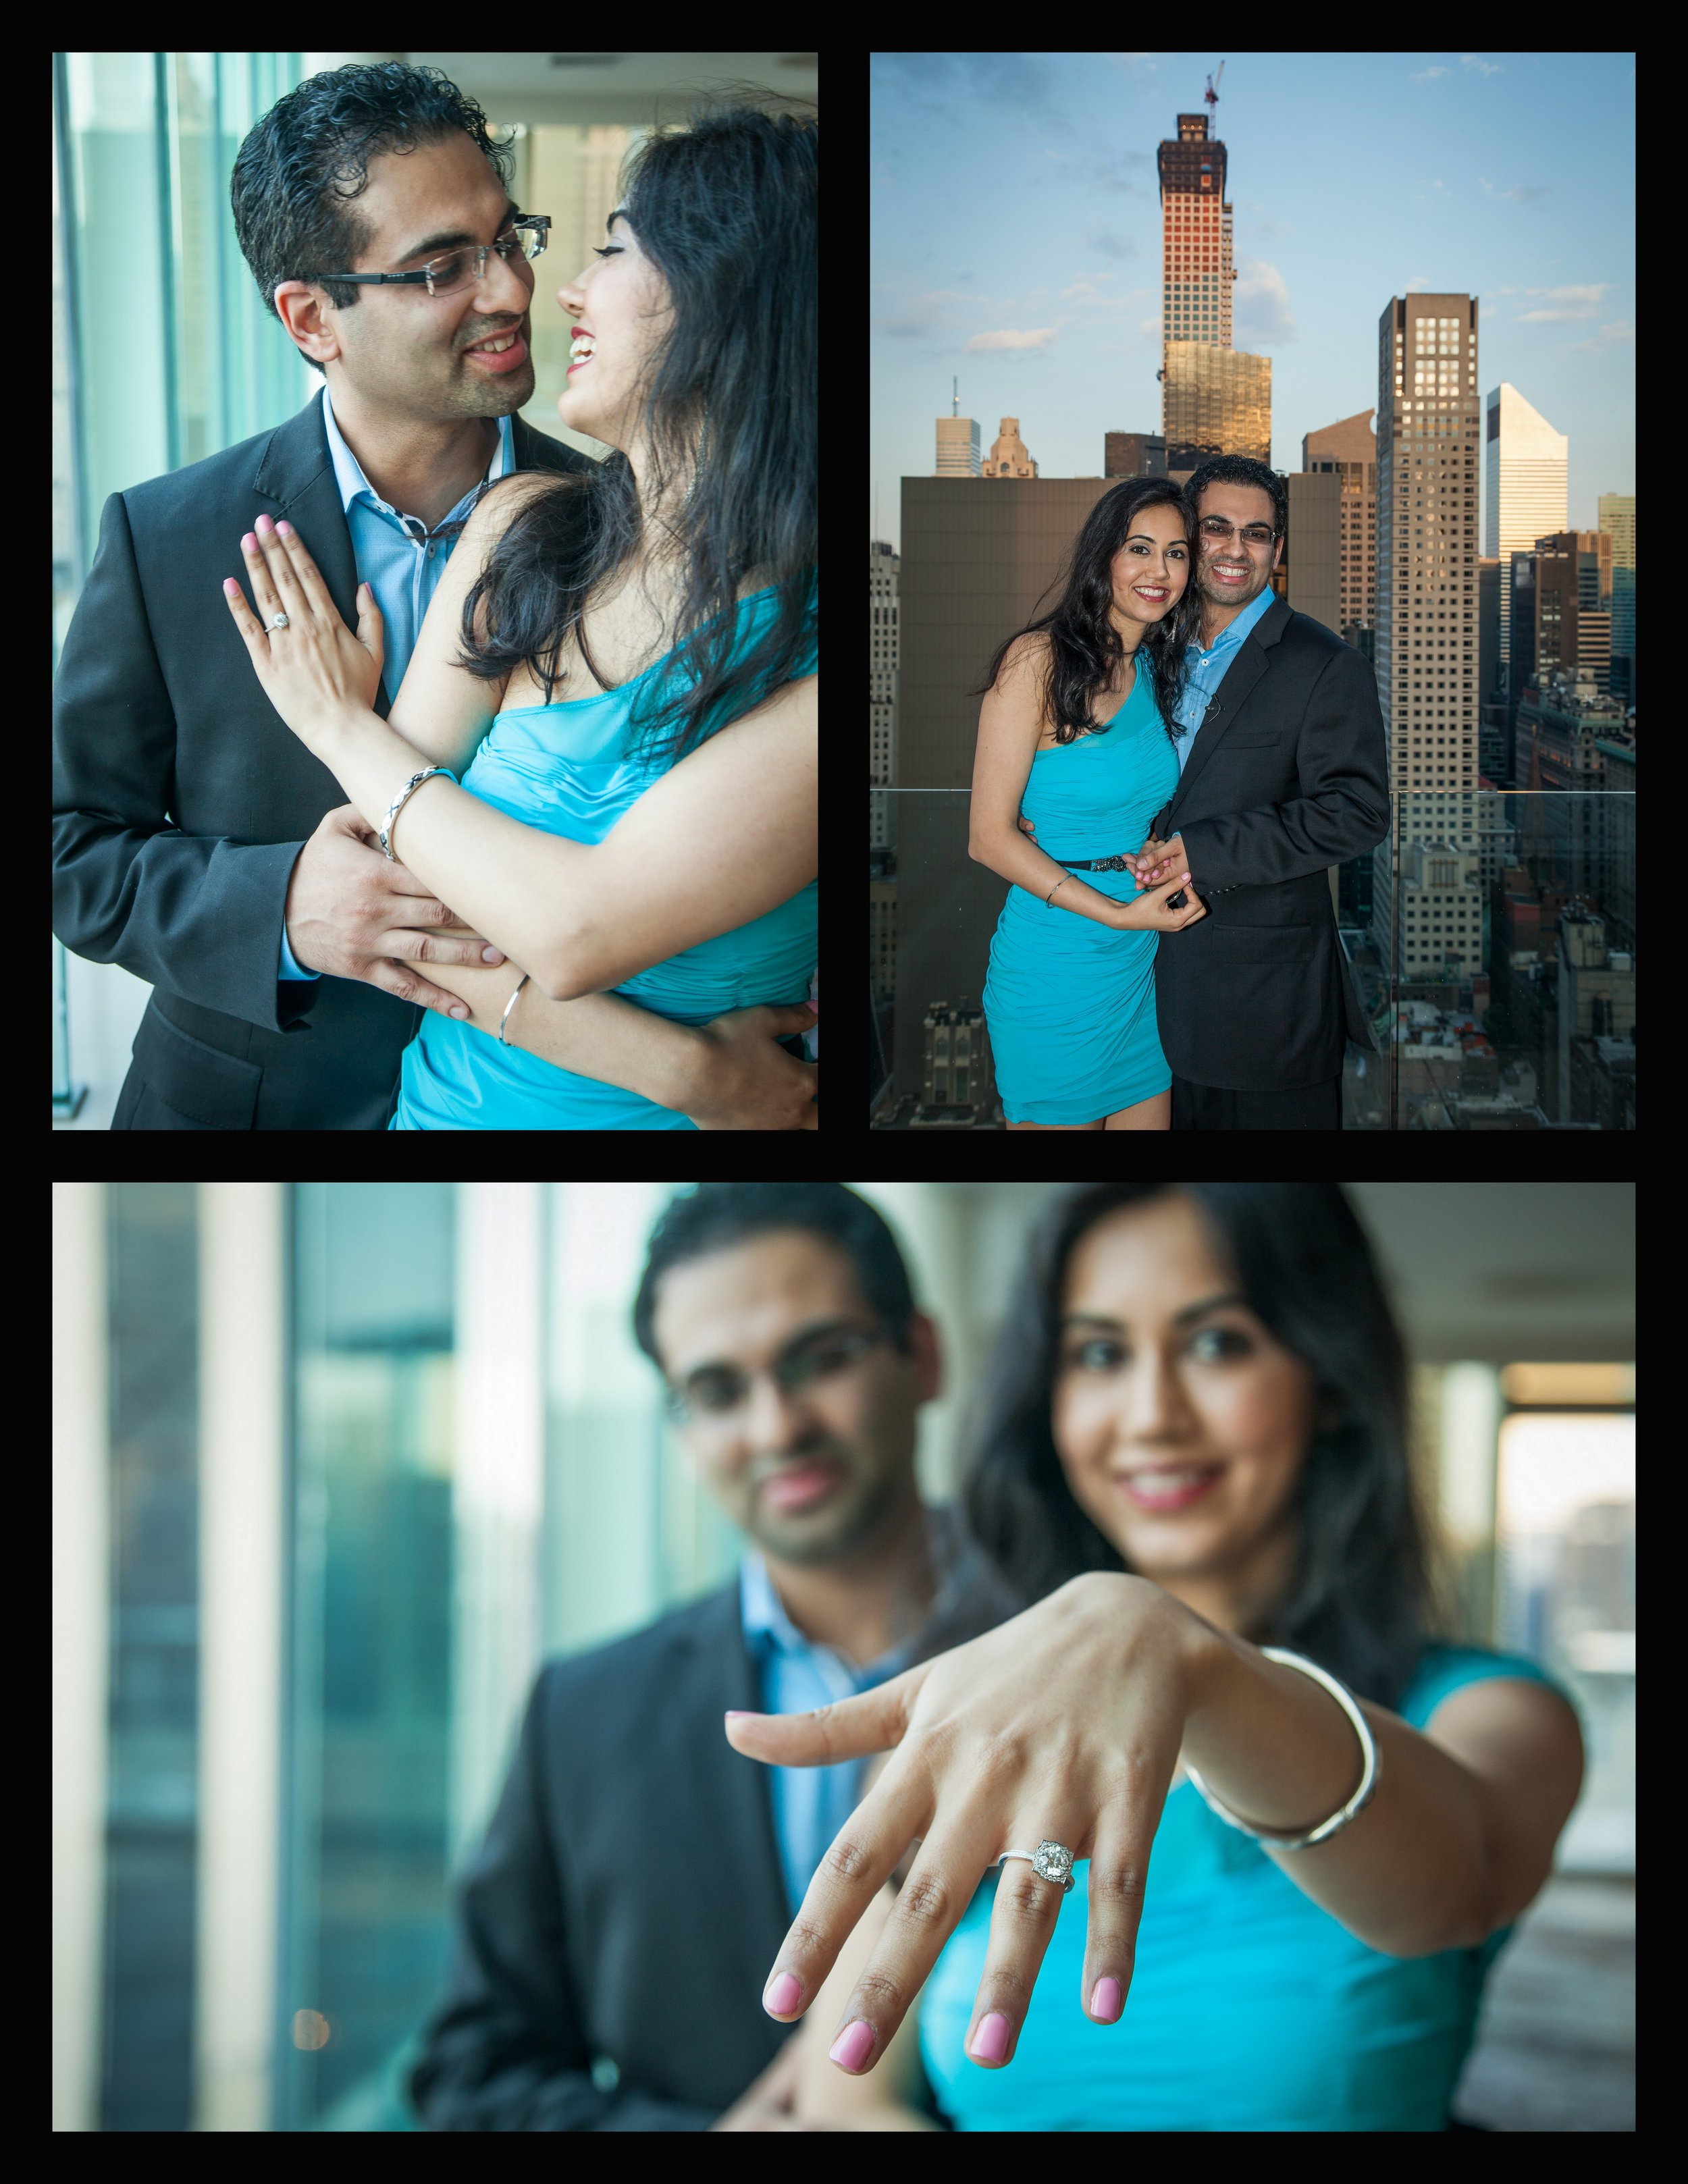 happy couple, nyc skyline, engagement ring